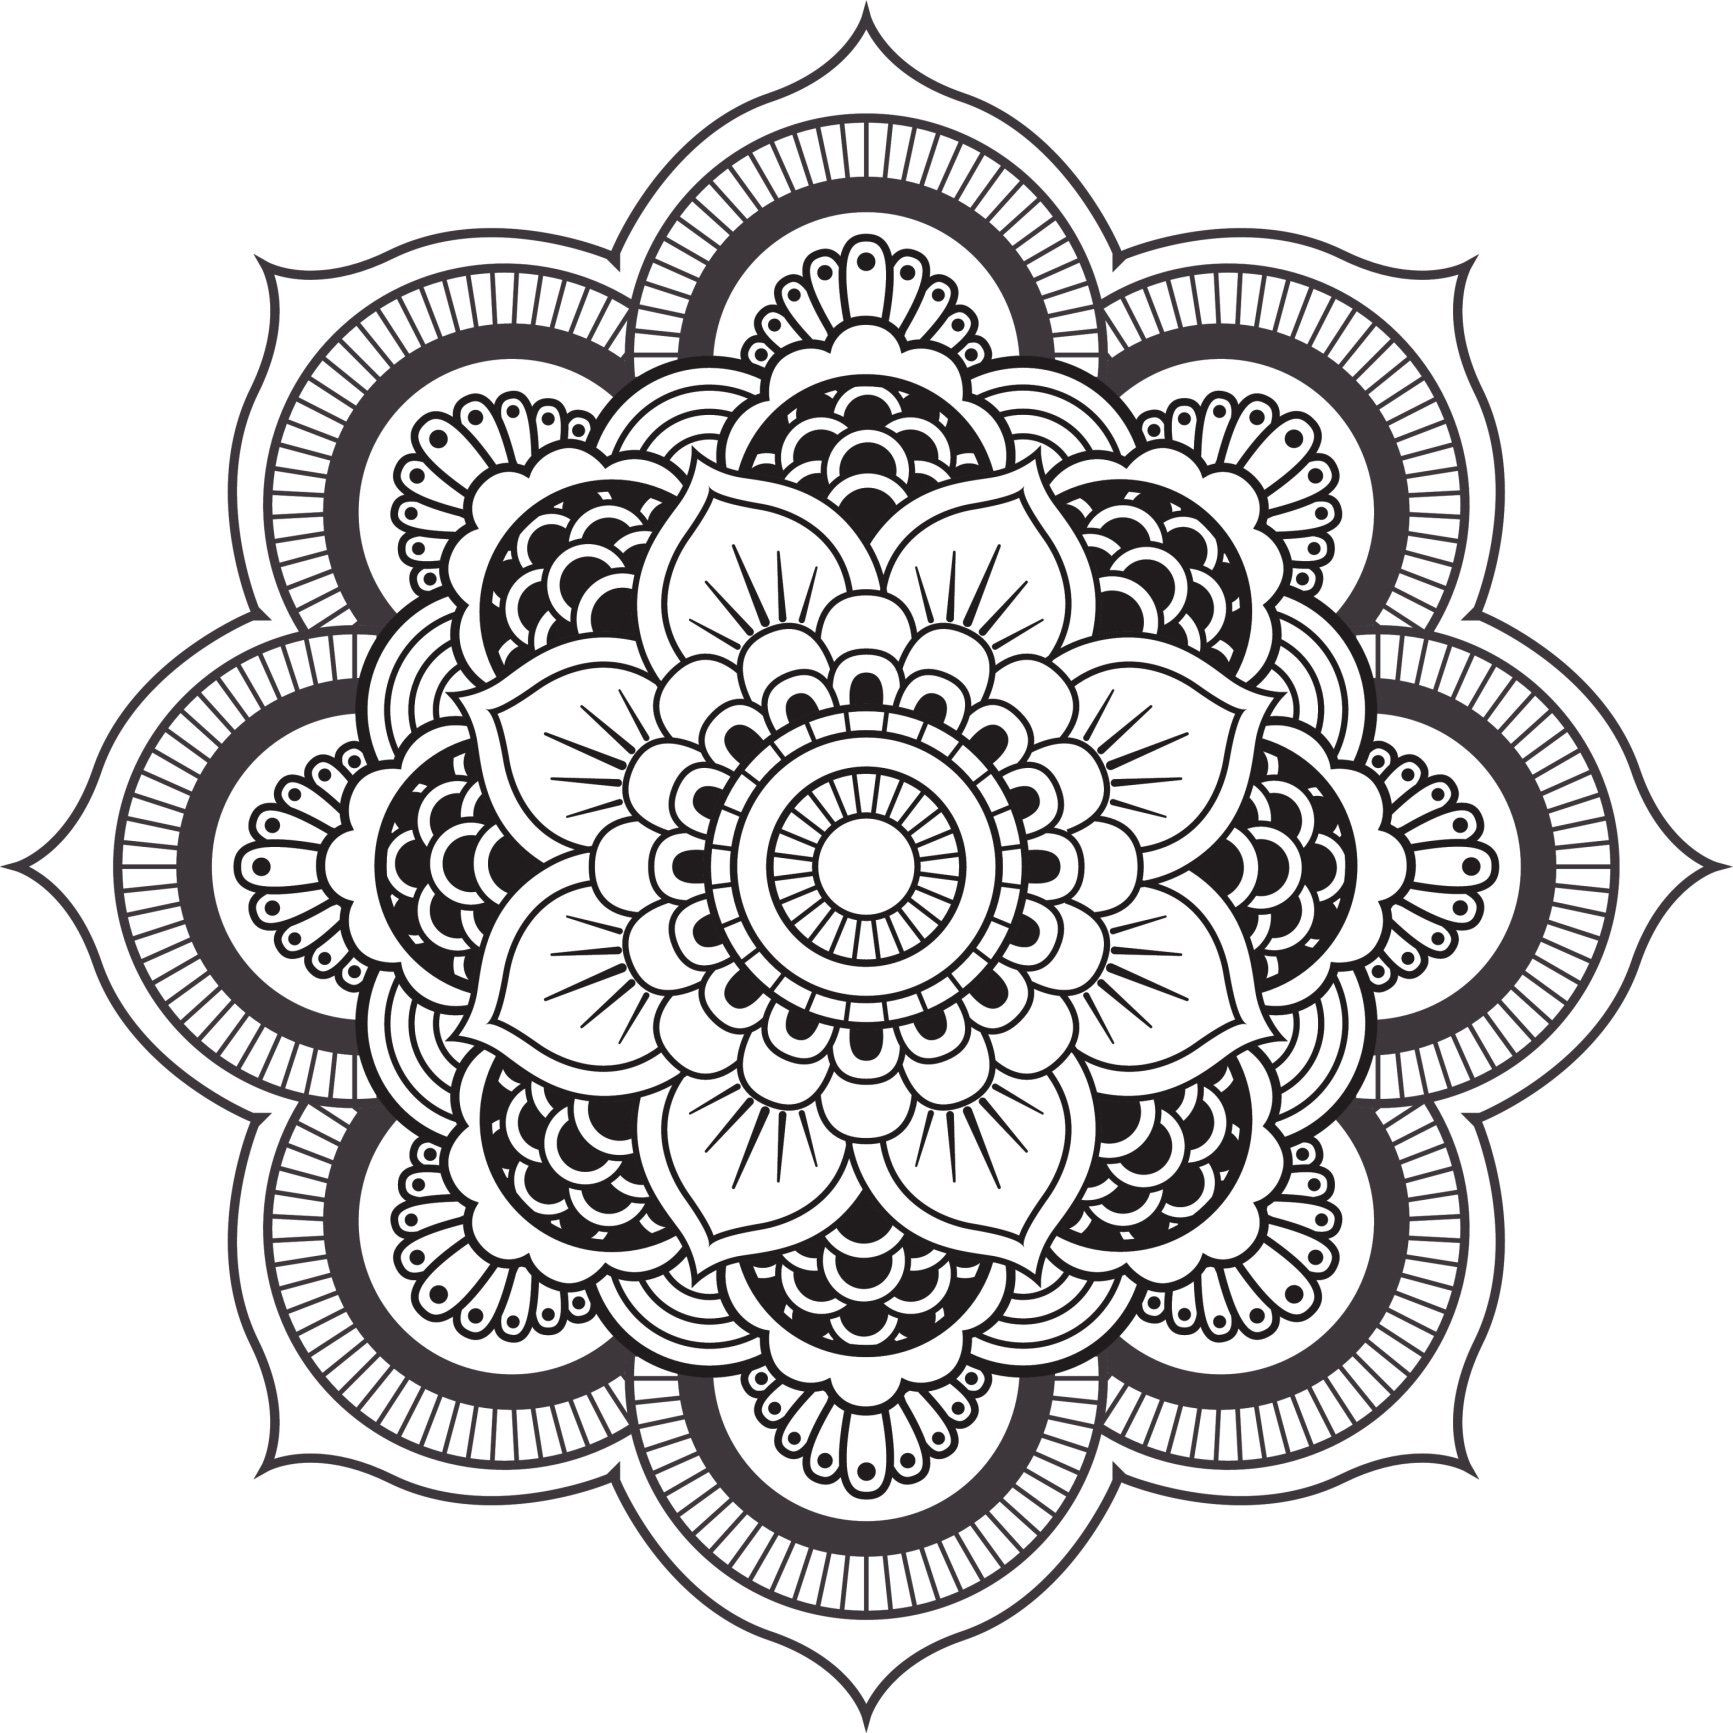 Robot Check Mandala Coloring Books Mandala Mandala Coloring Pages